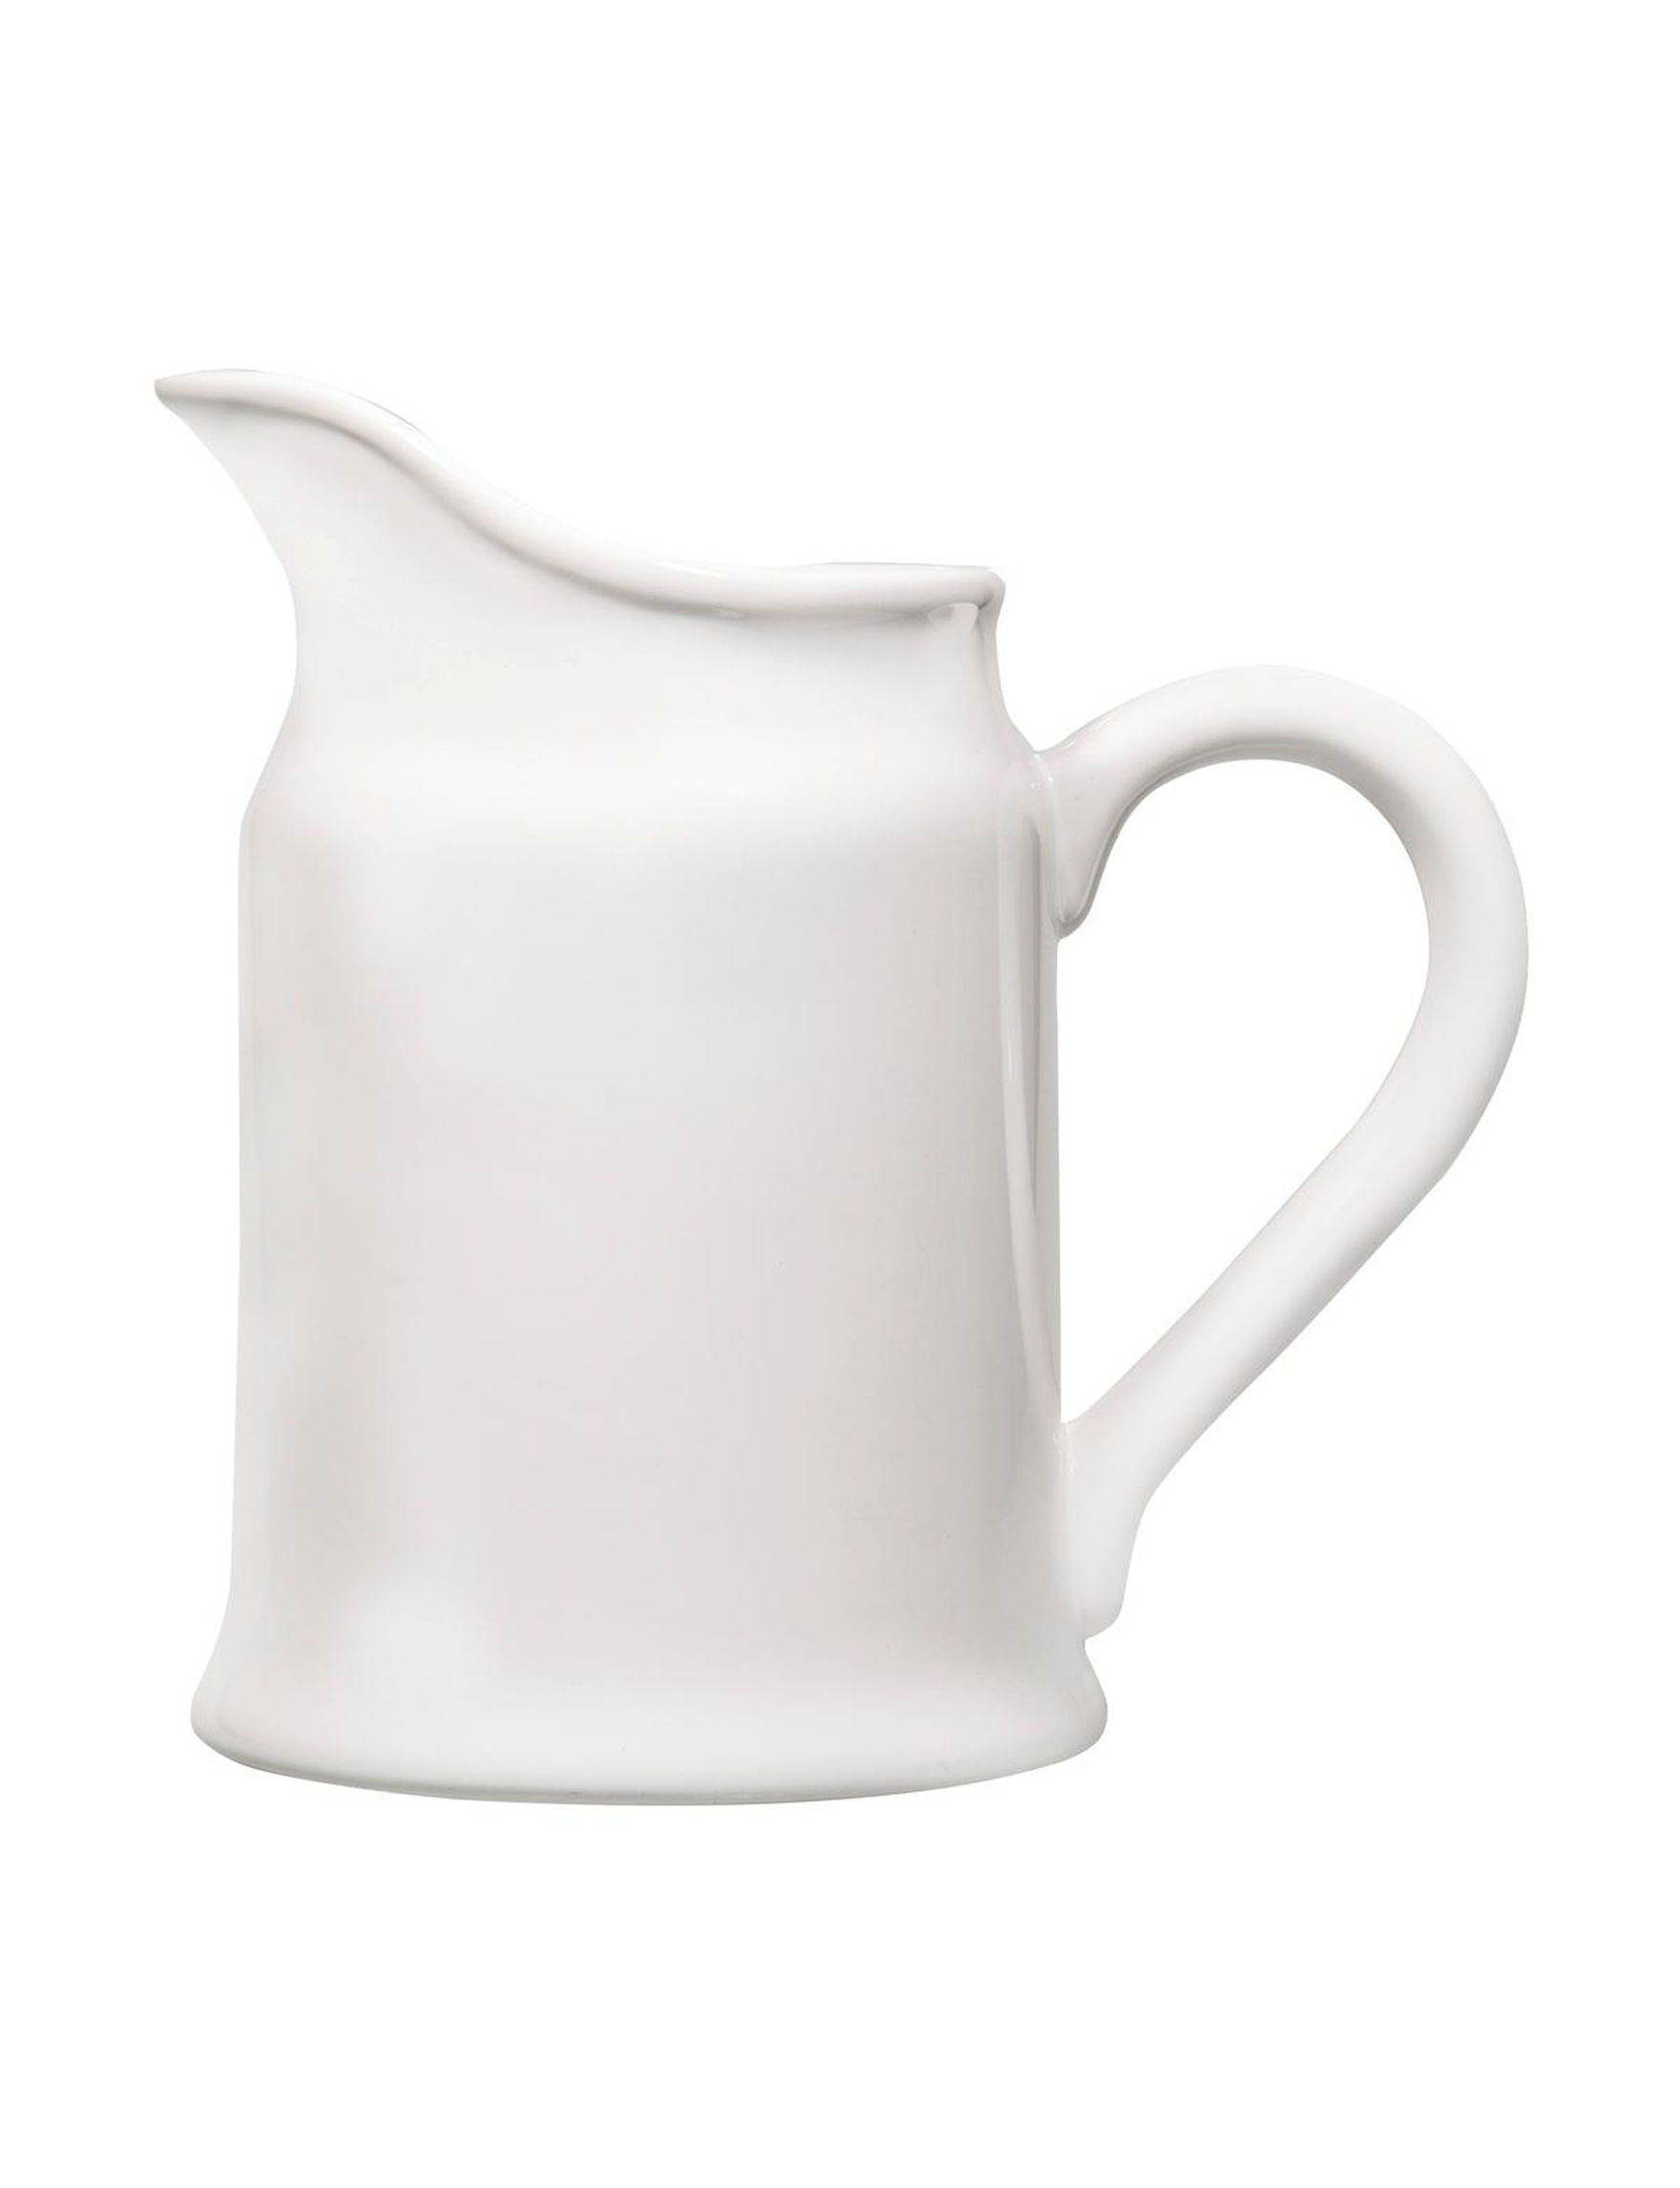 Home Essentials  Pitchers & Punch Bowls Serveware